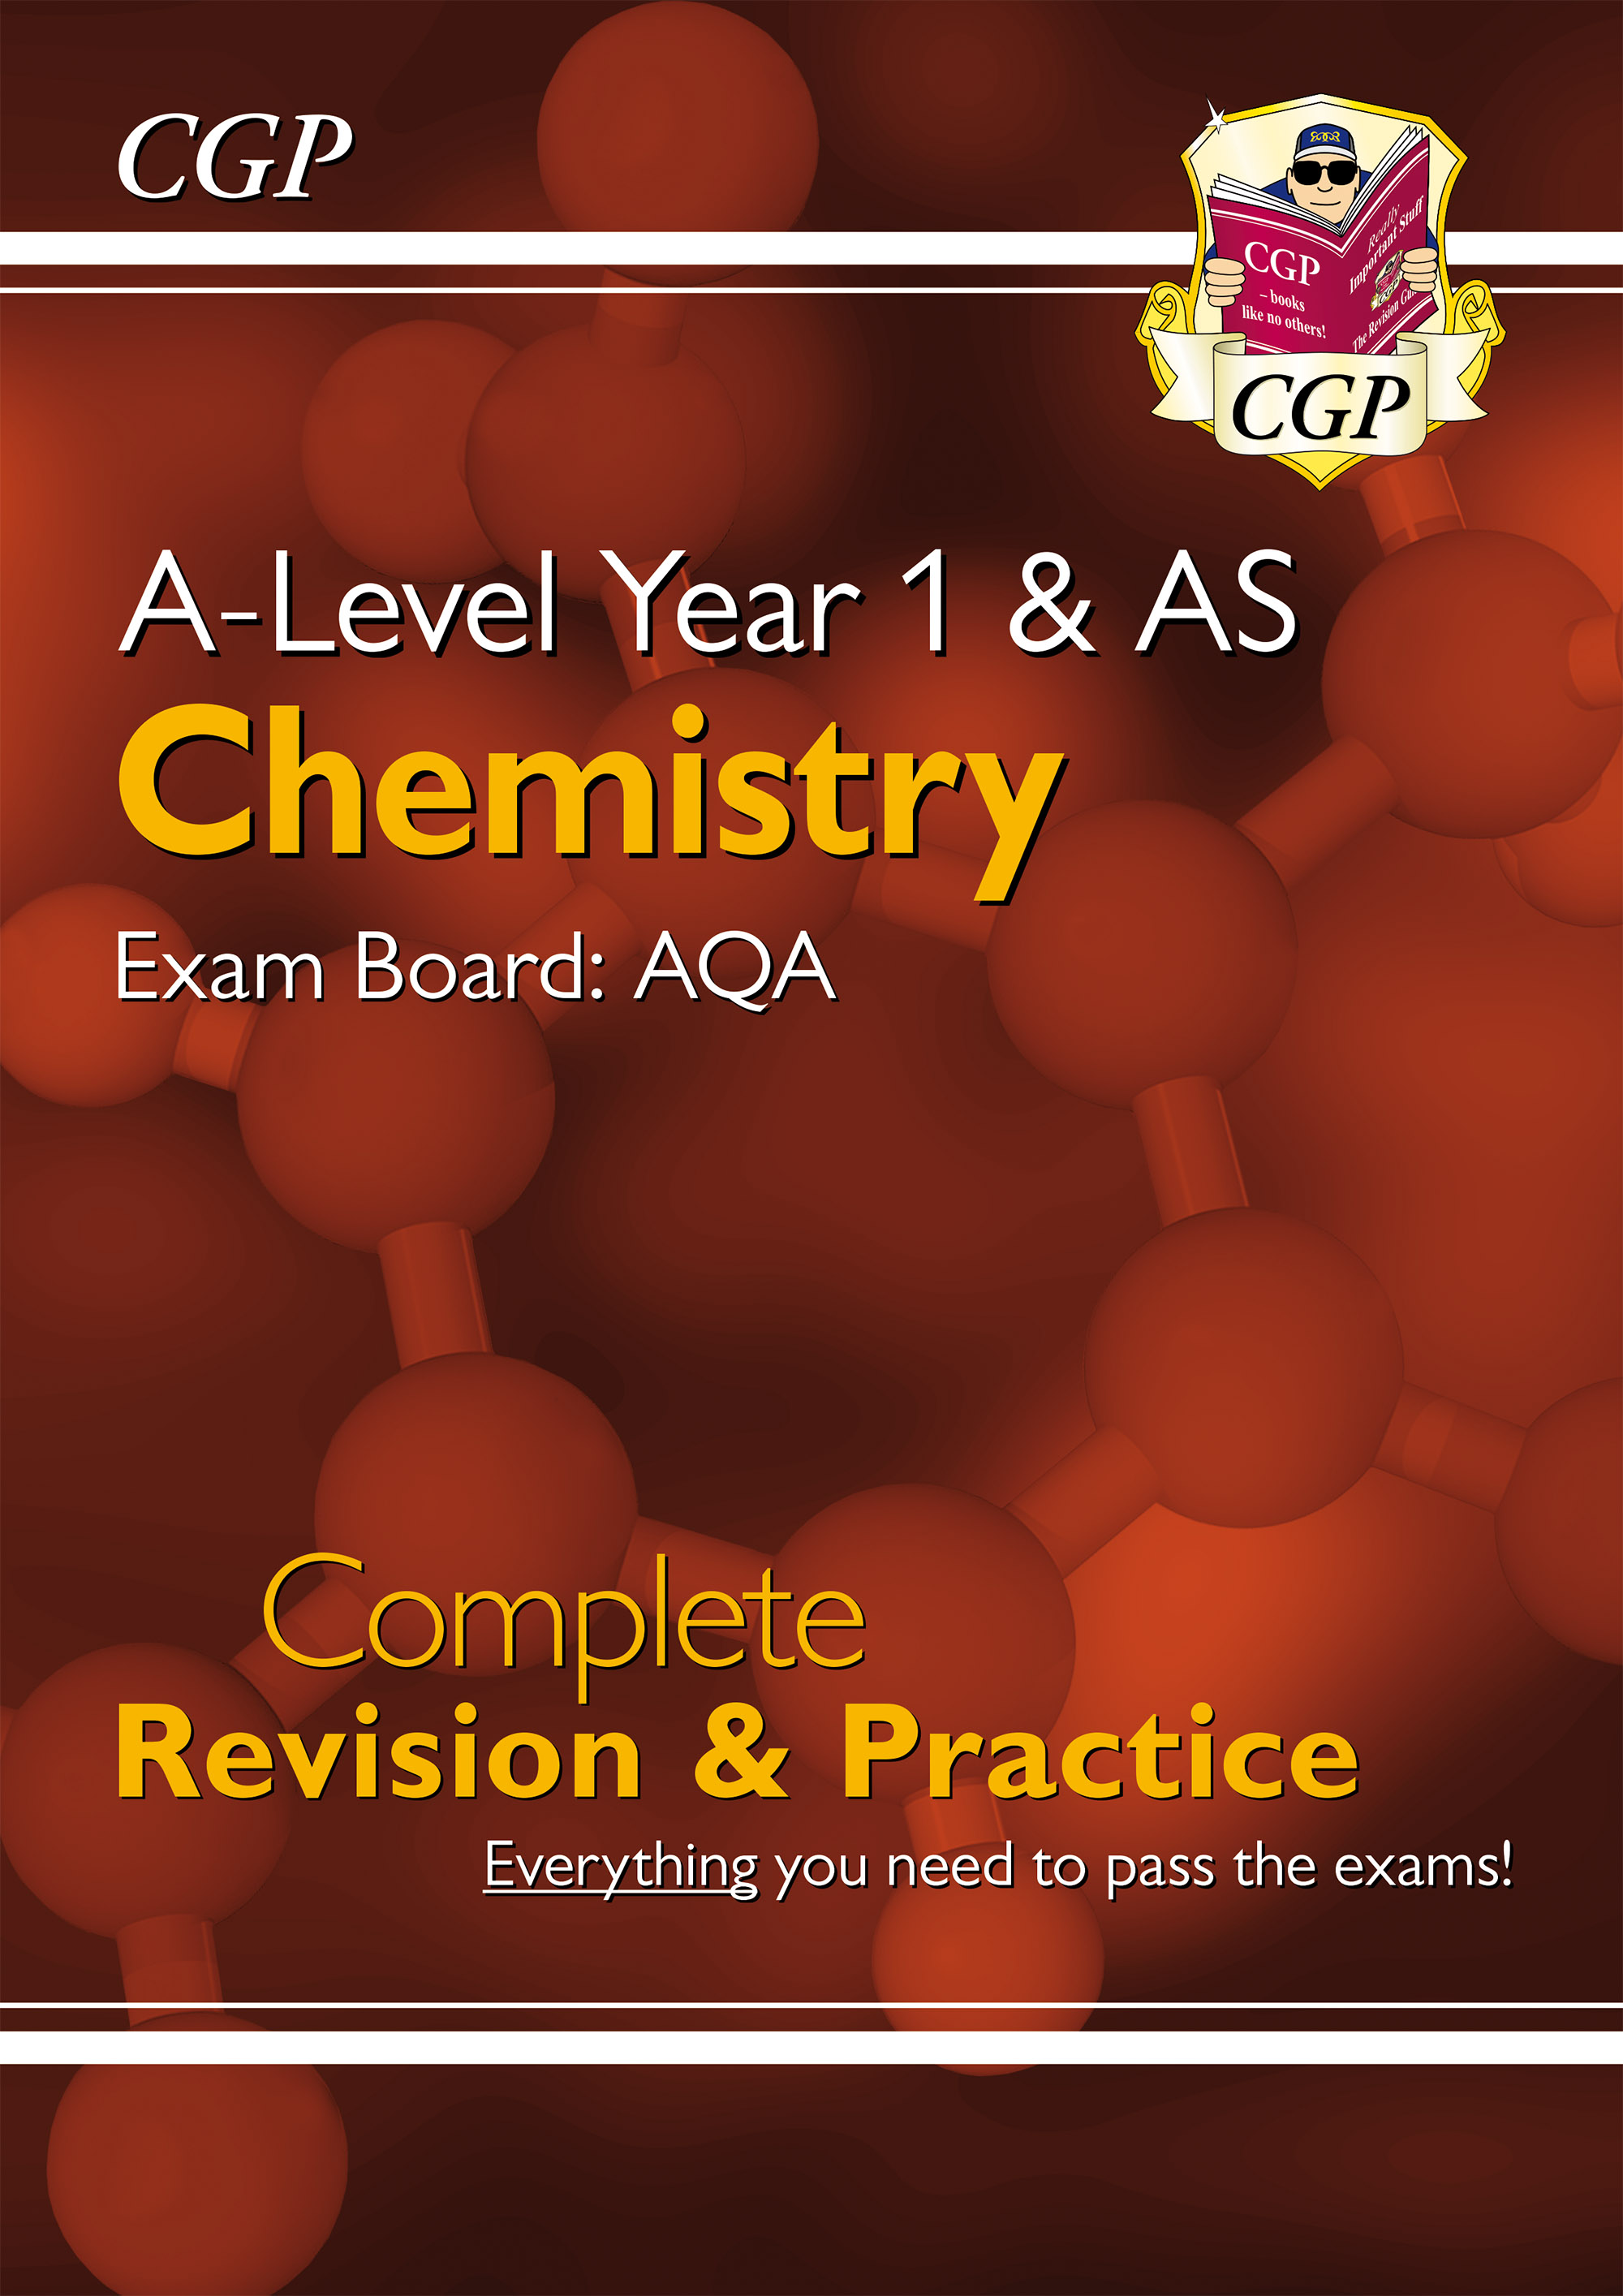 CAR54DK - New A-Level Chemistry for 2018: AQA Year 1 & AS Complete Revision & Practice